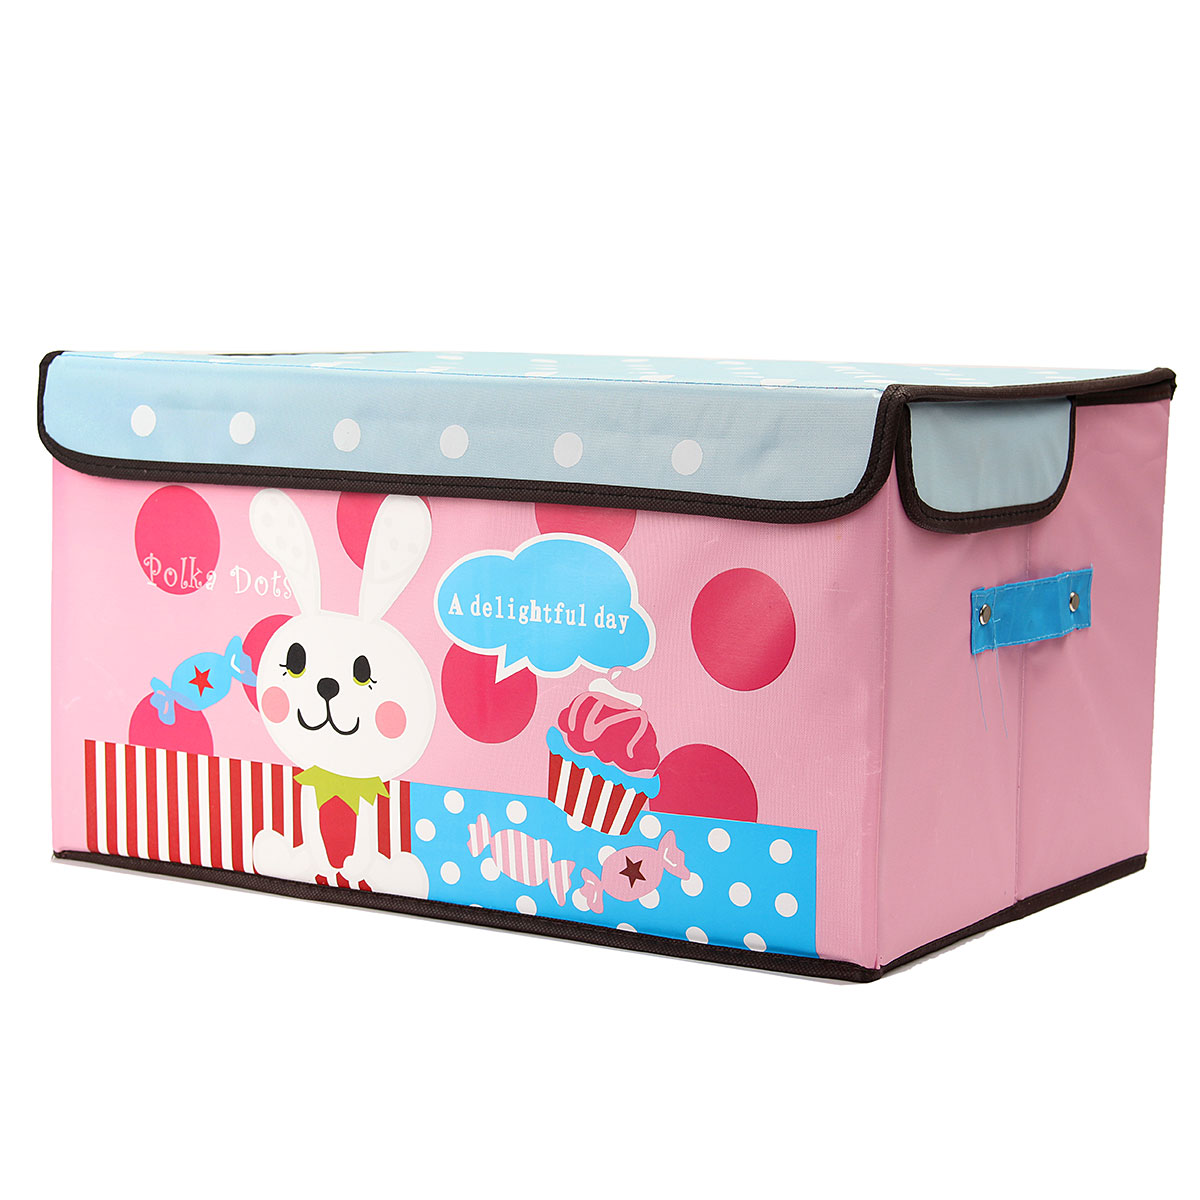 Toy Boxes For Girls : Popular cardboard toy box buy cheap lots